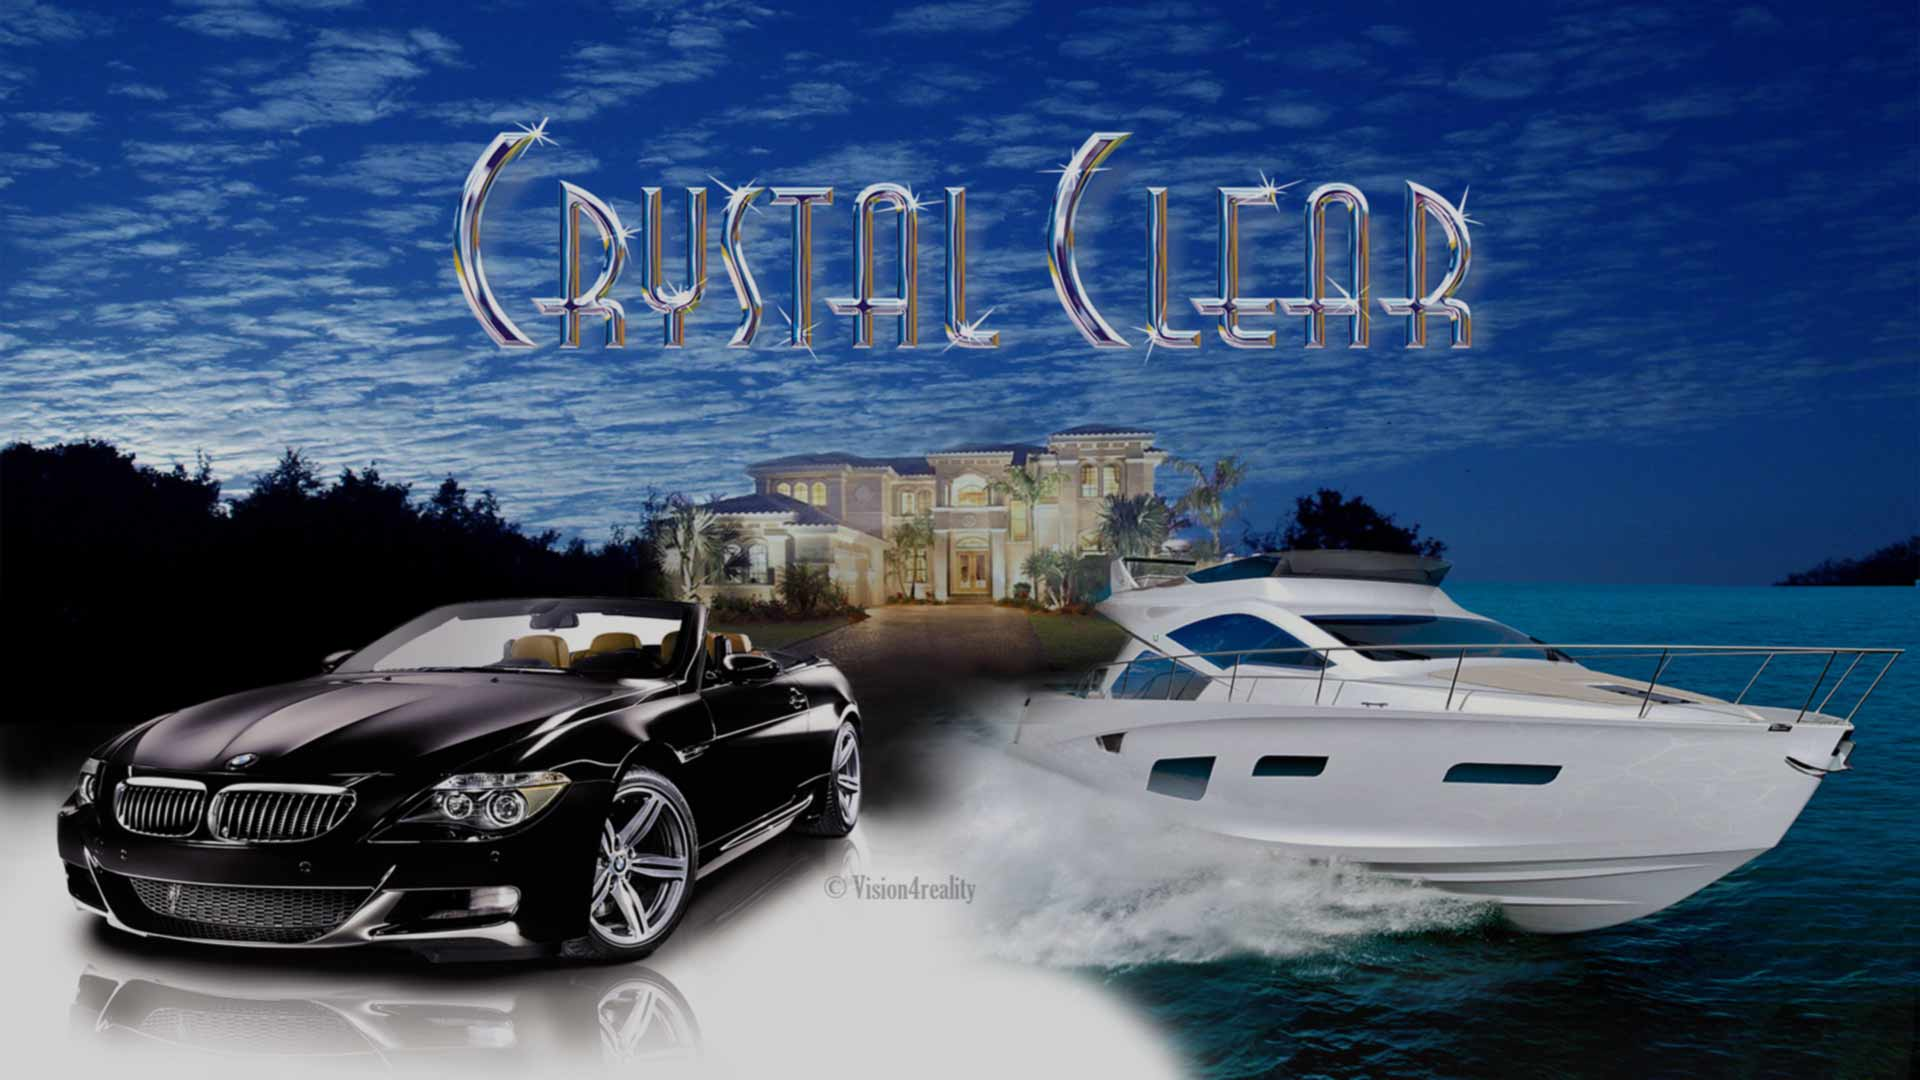 Welcome to crystal clear crystalclear for Car house